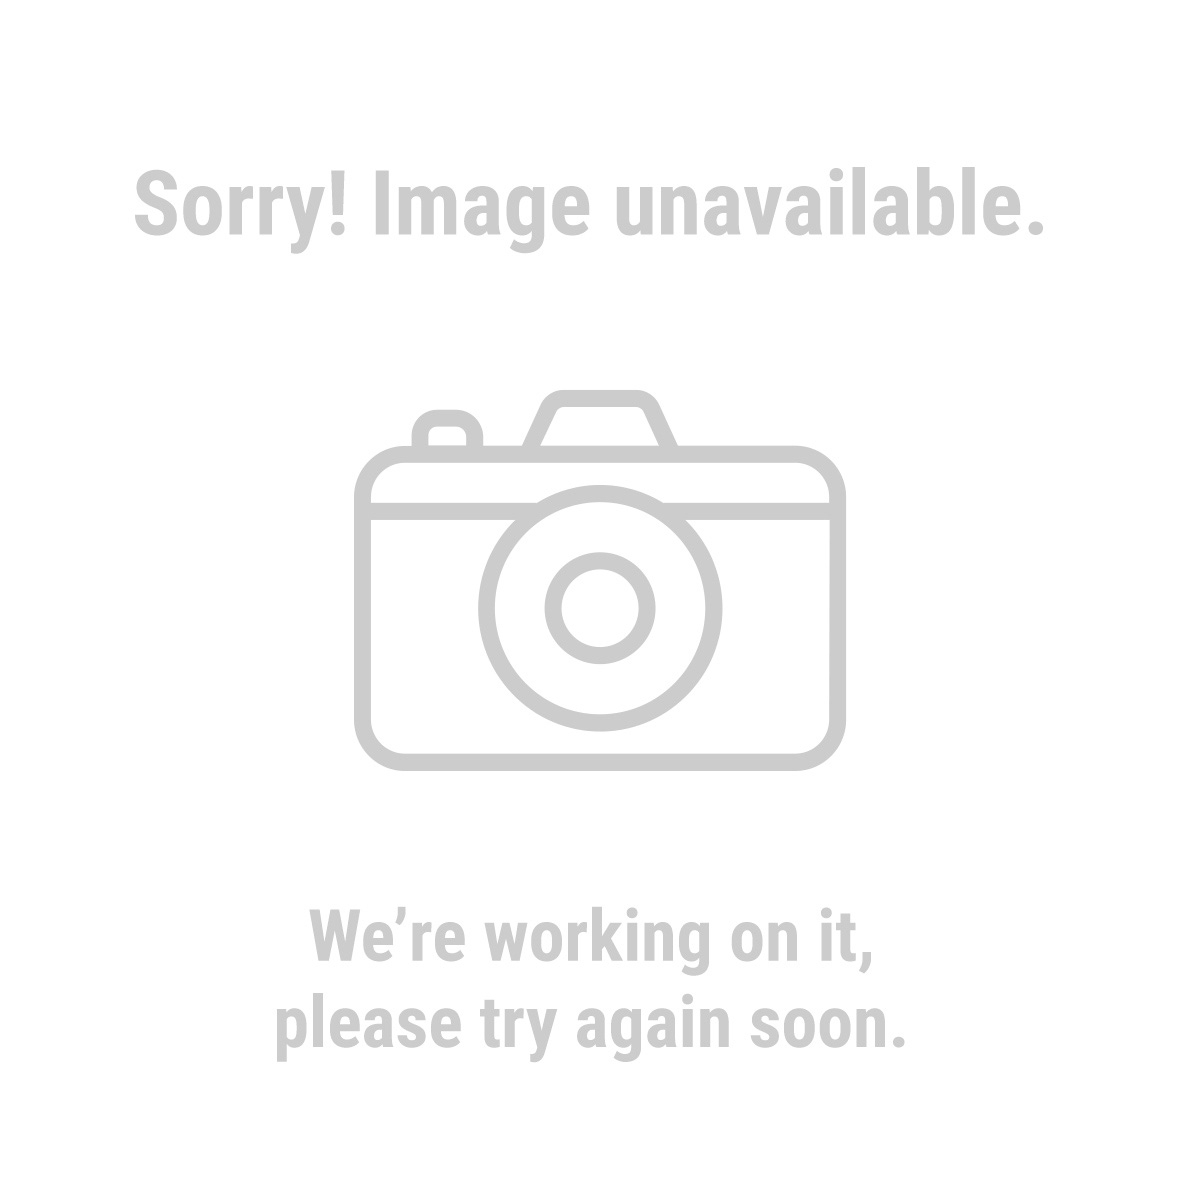 Drill Master 69438 6 In. Cut-Off Saw